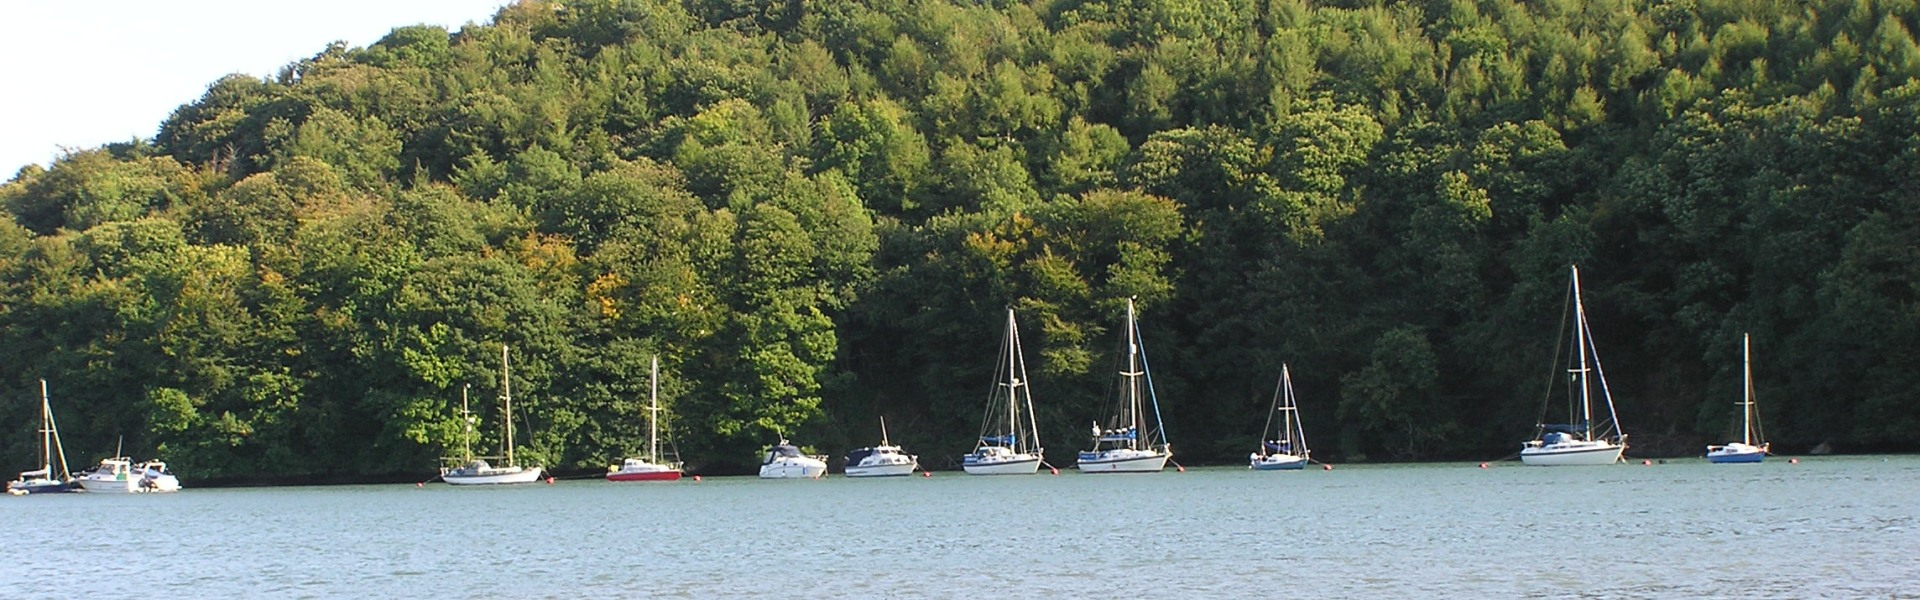 Our Moorings - River Dart Moorings, Dartmouth, Devon